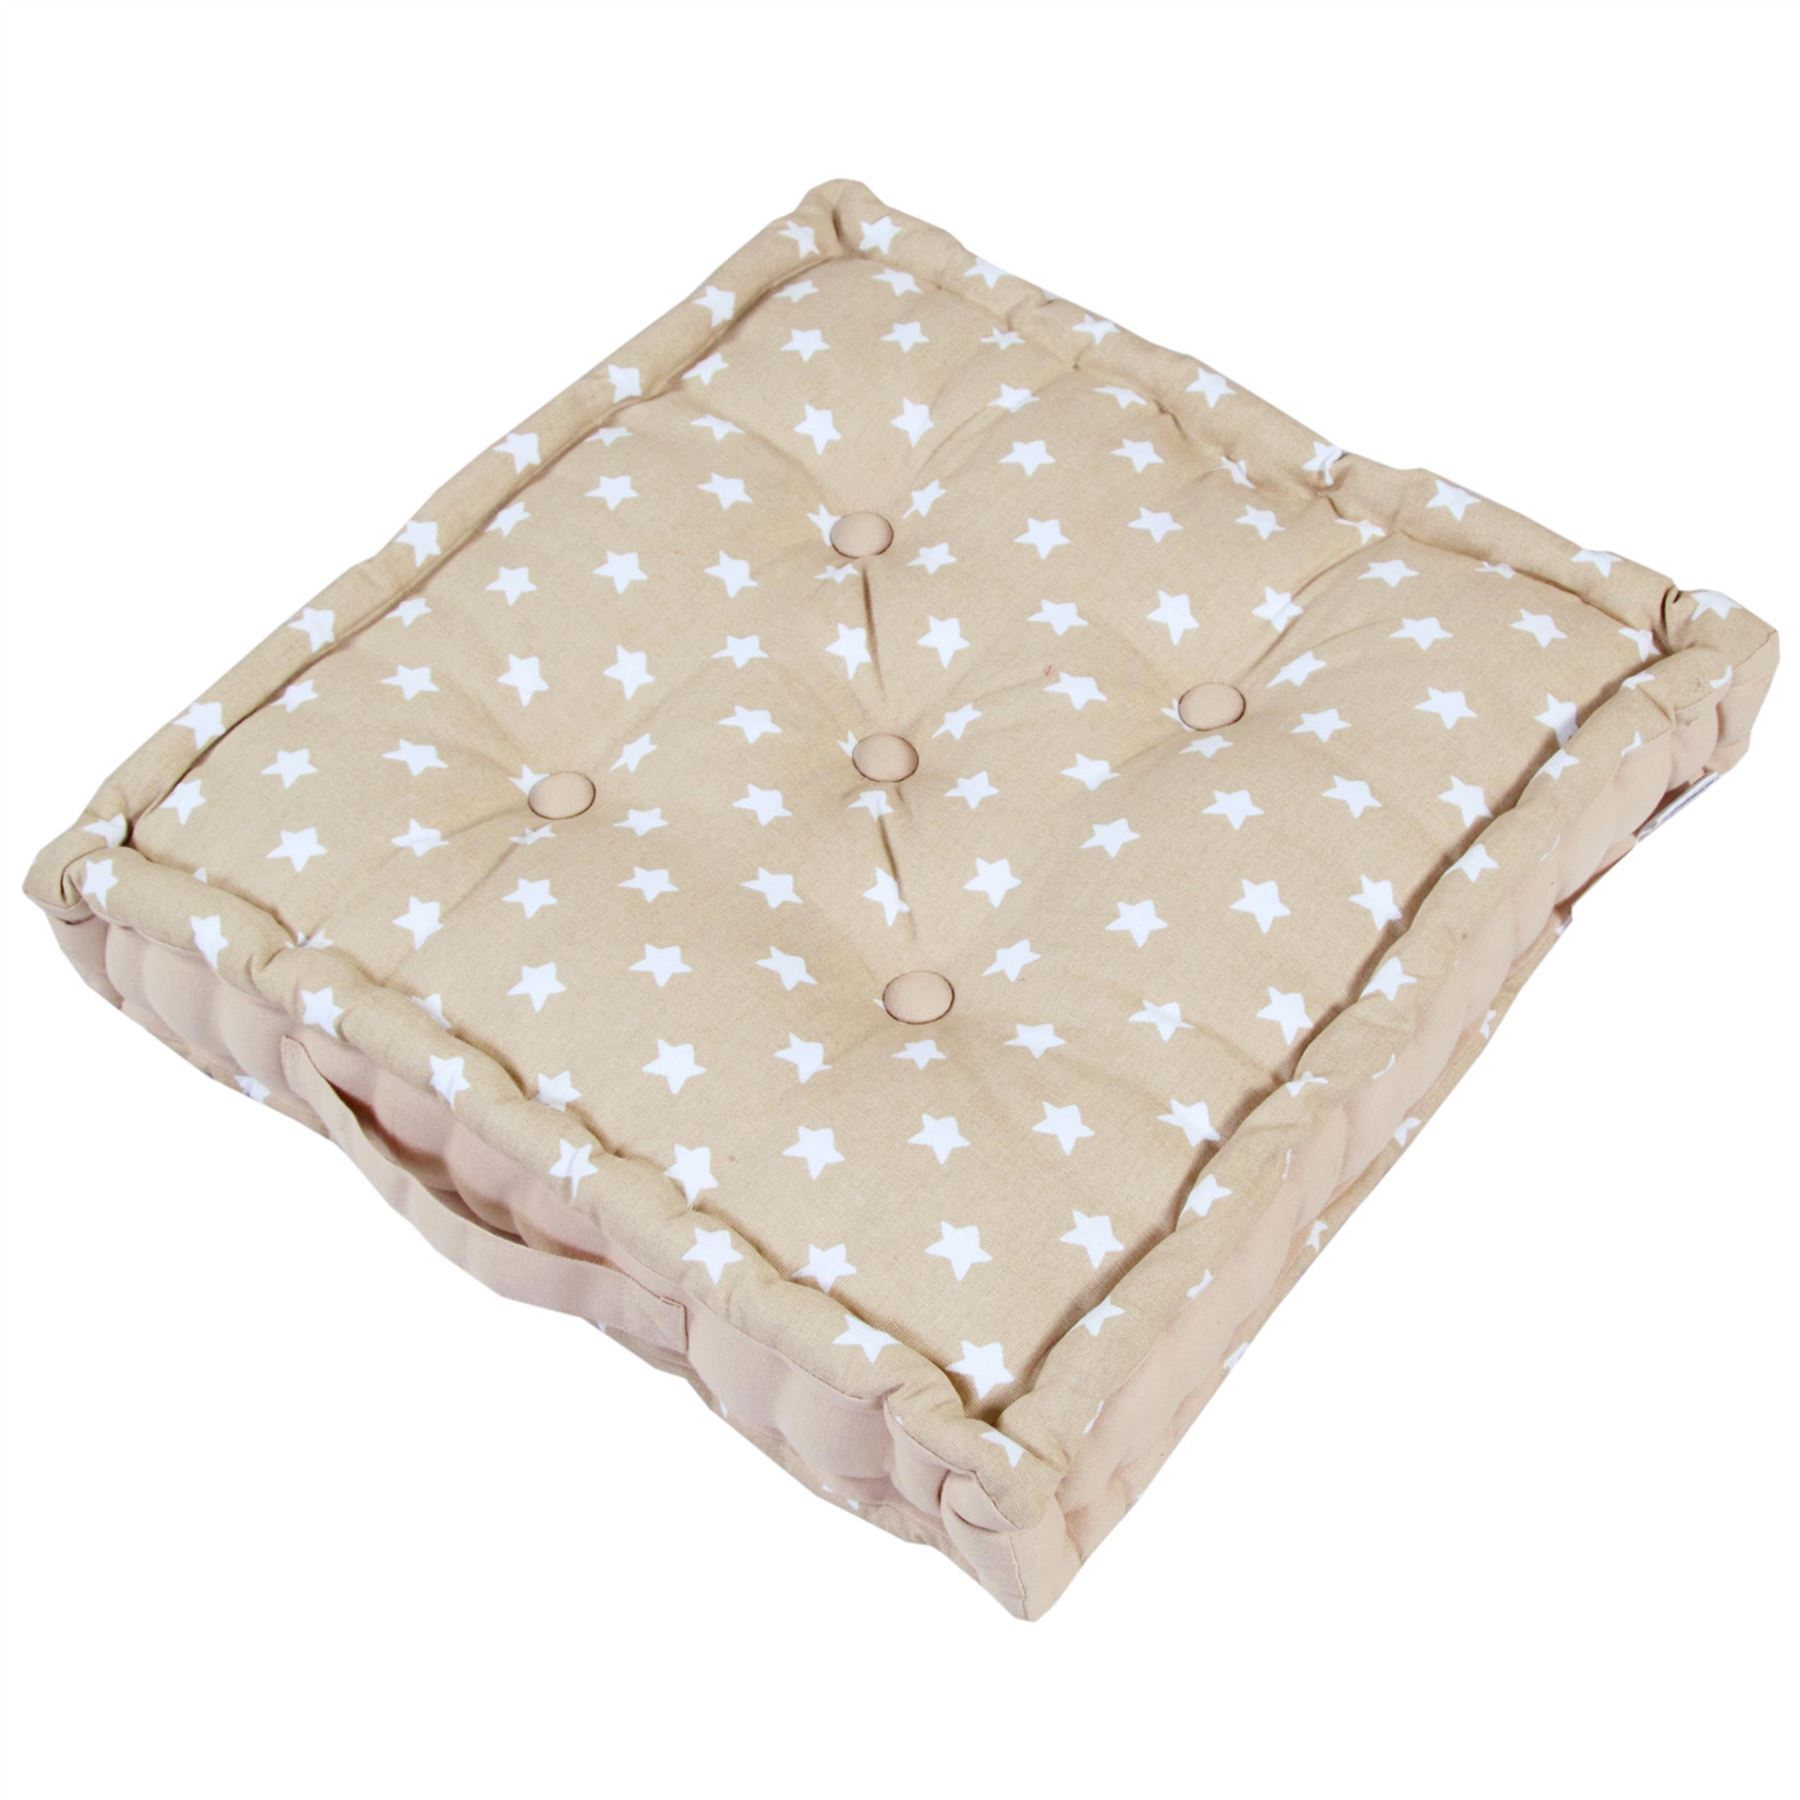 Cotton-Floral-Large-Floor-Cushions-Kids-Garden-Dining-Chair-Seat-Pad-Booster